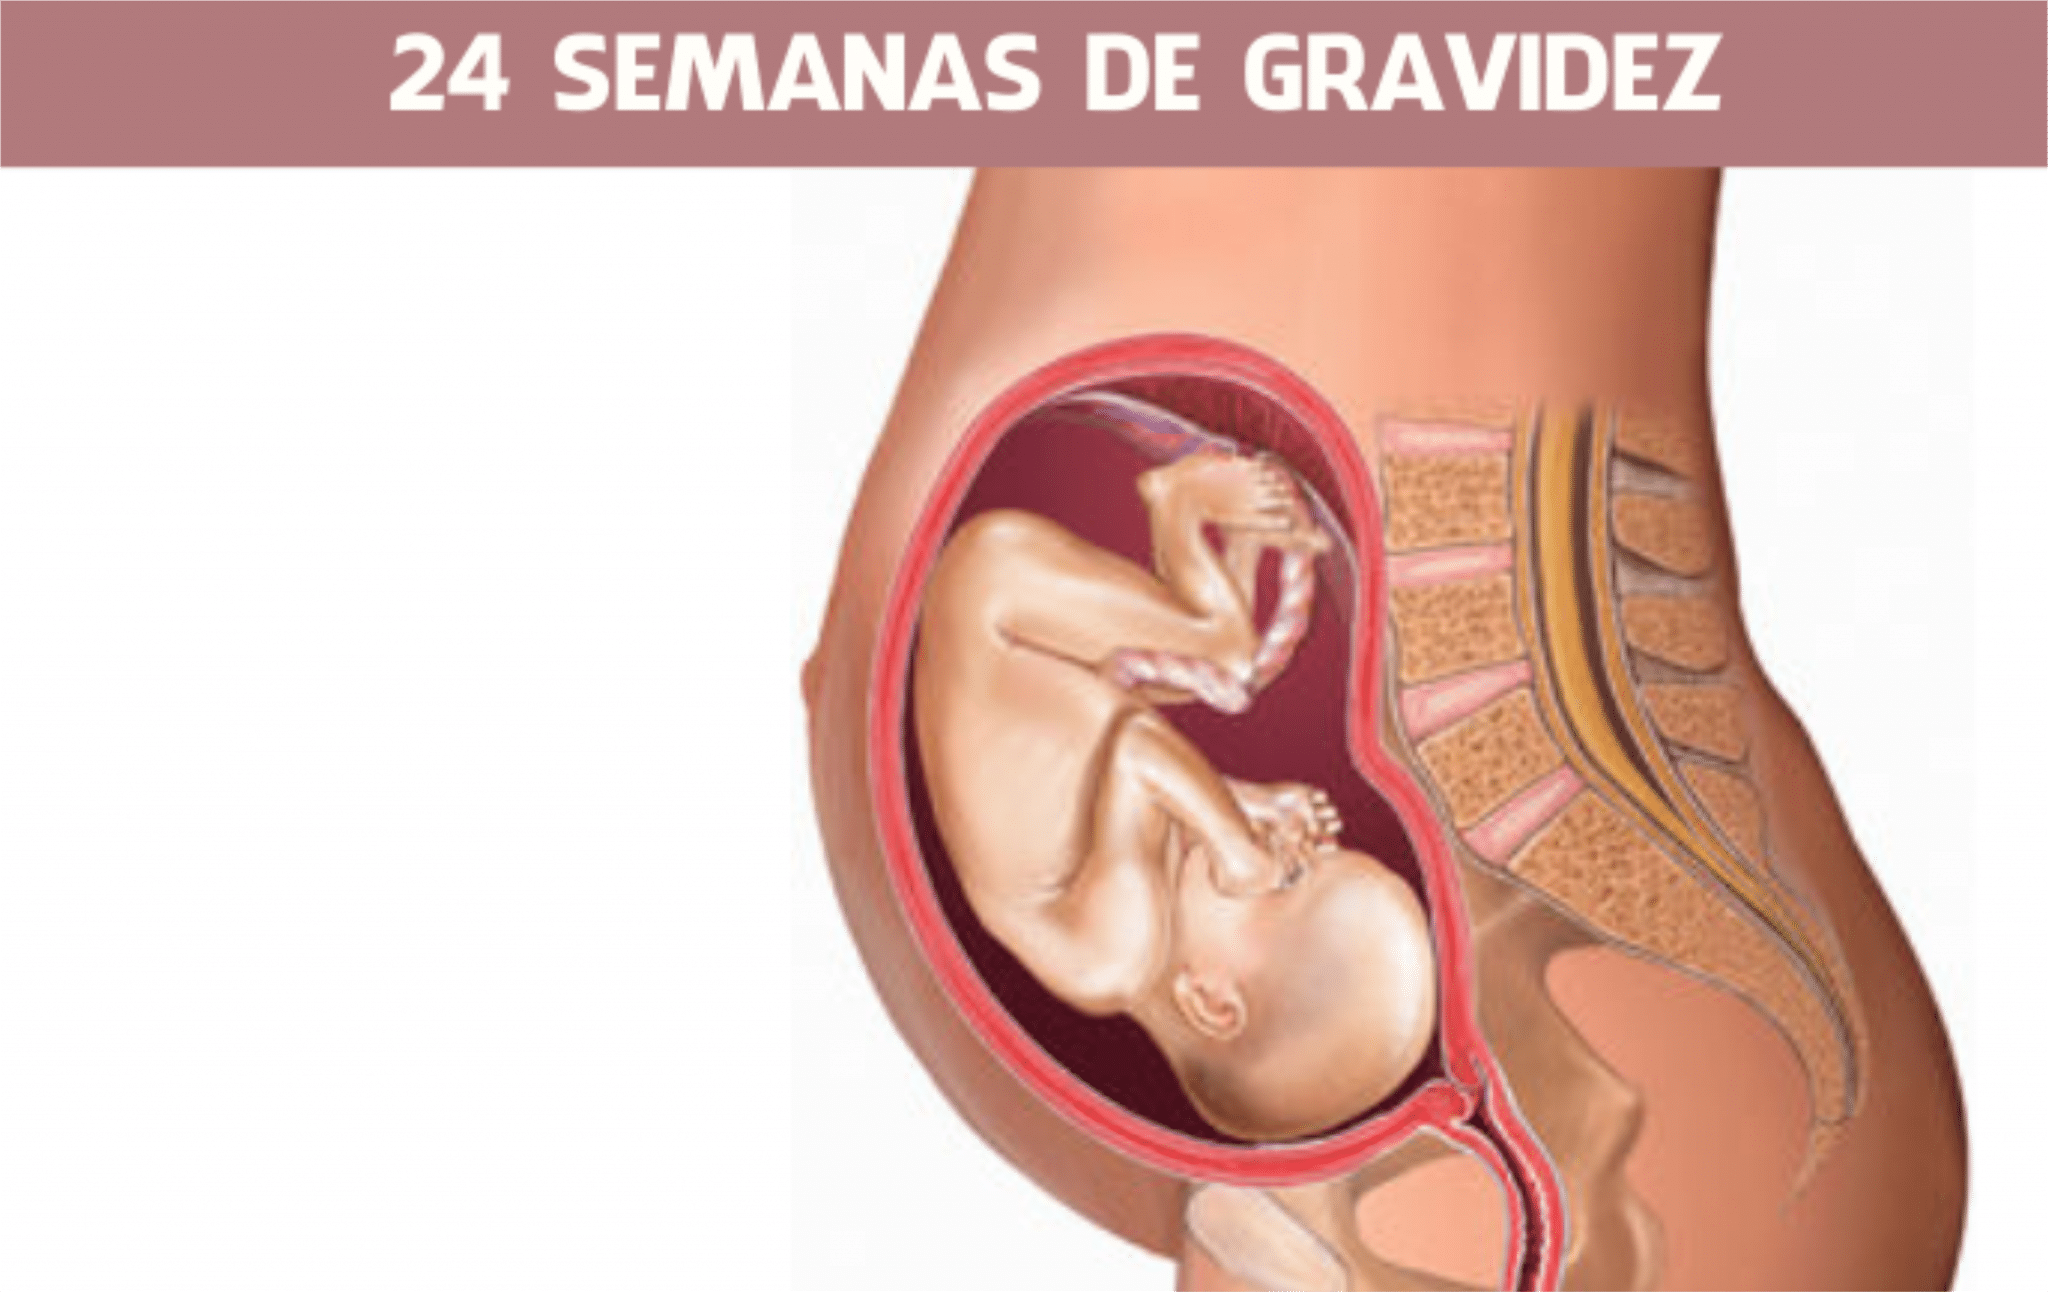 You are currently viewing 24 semanas de gravidez